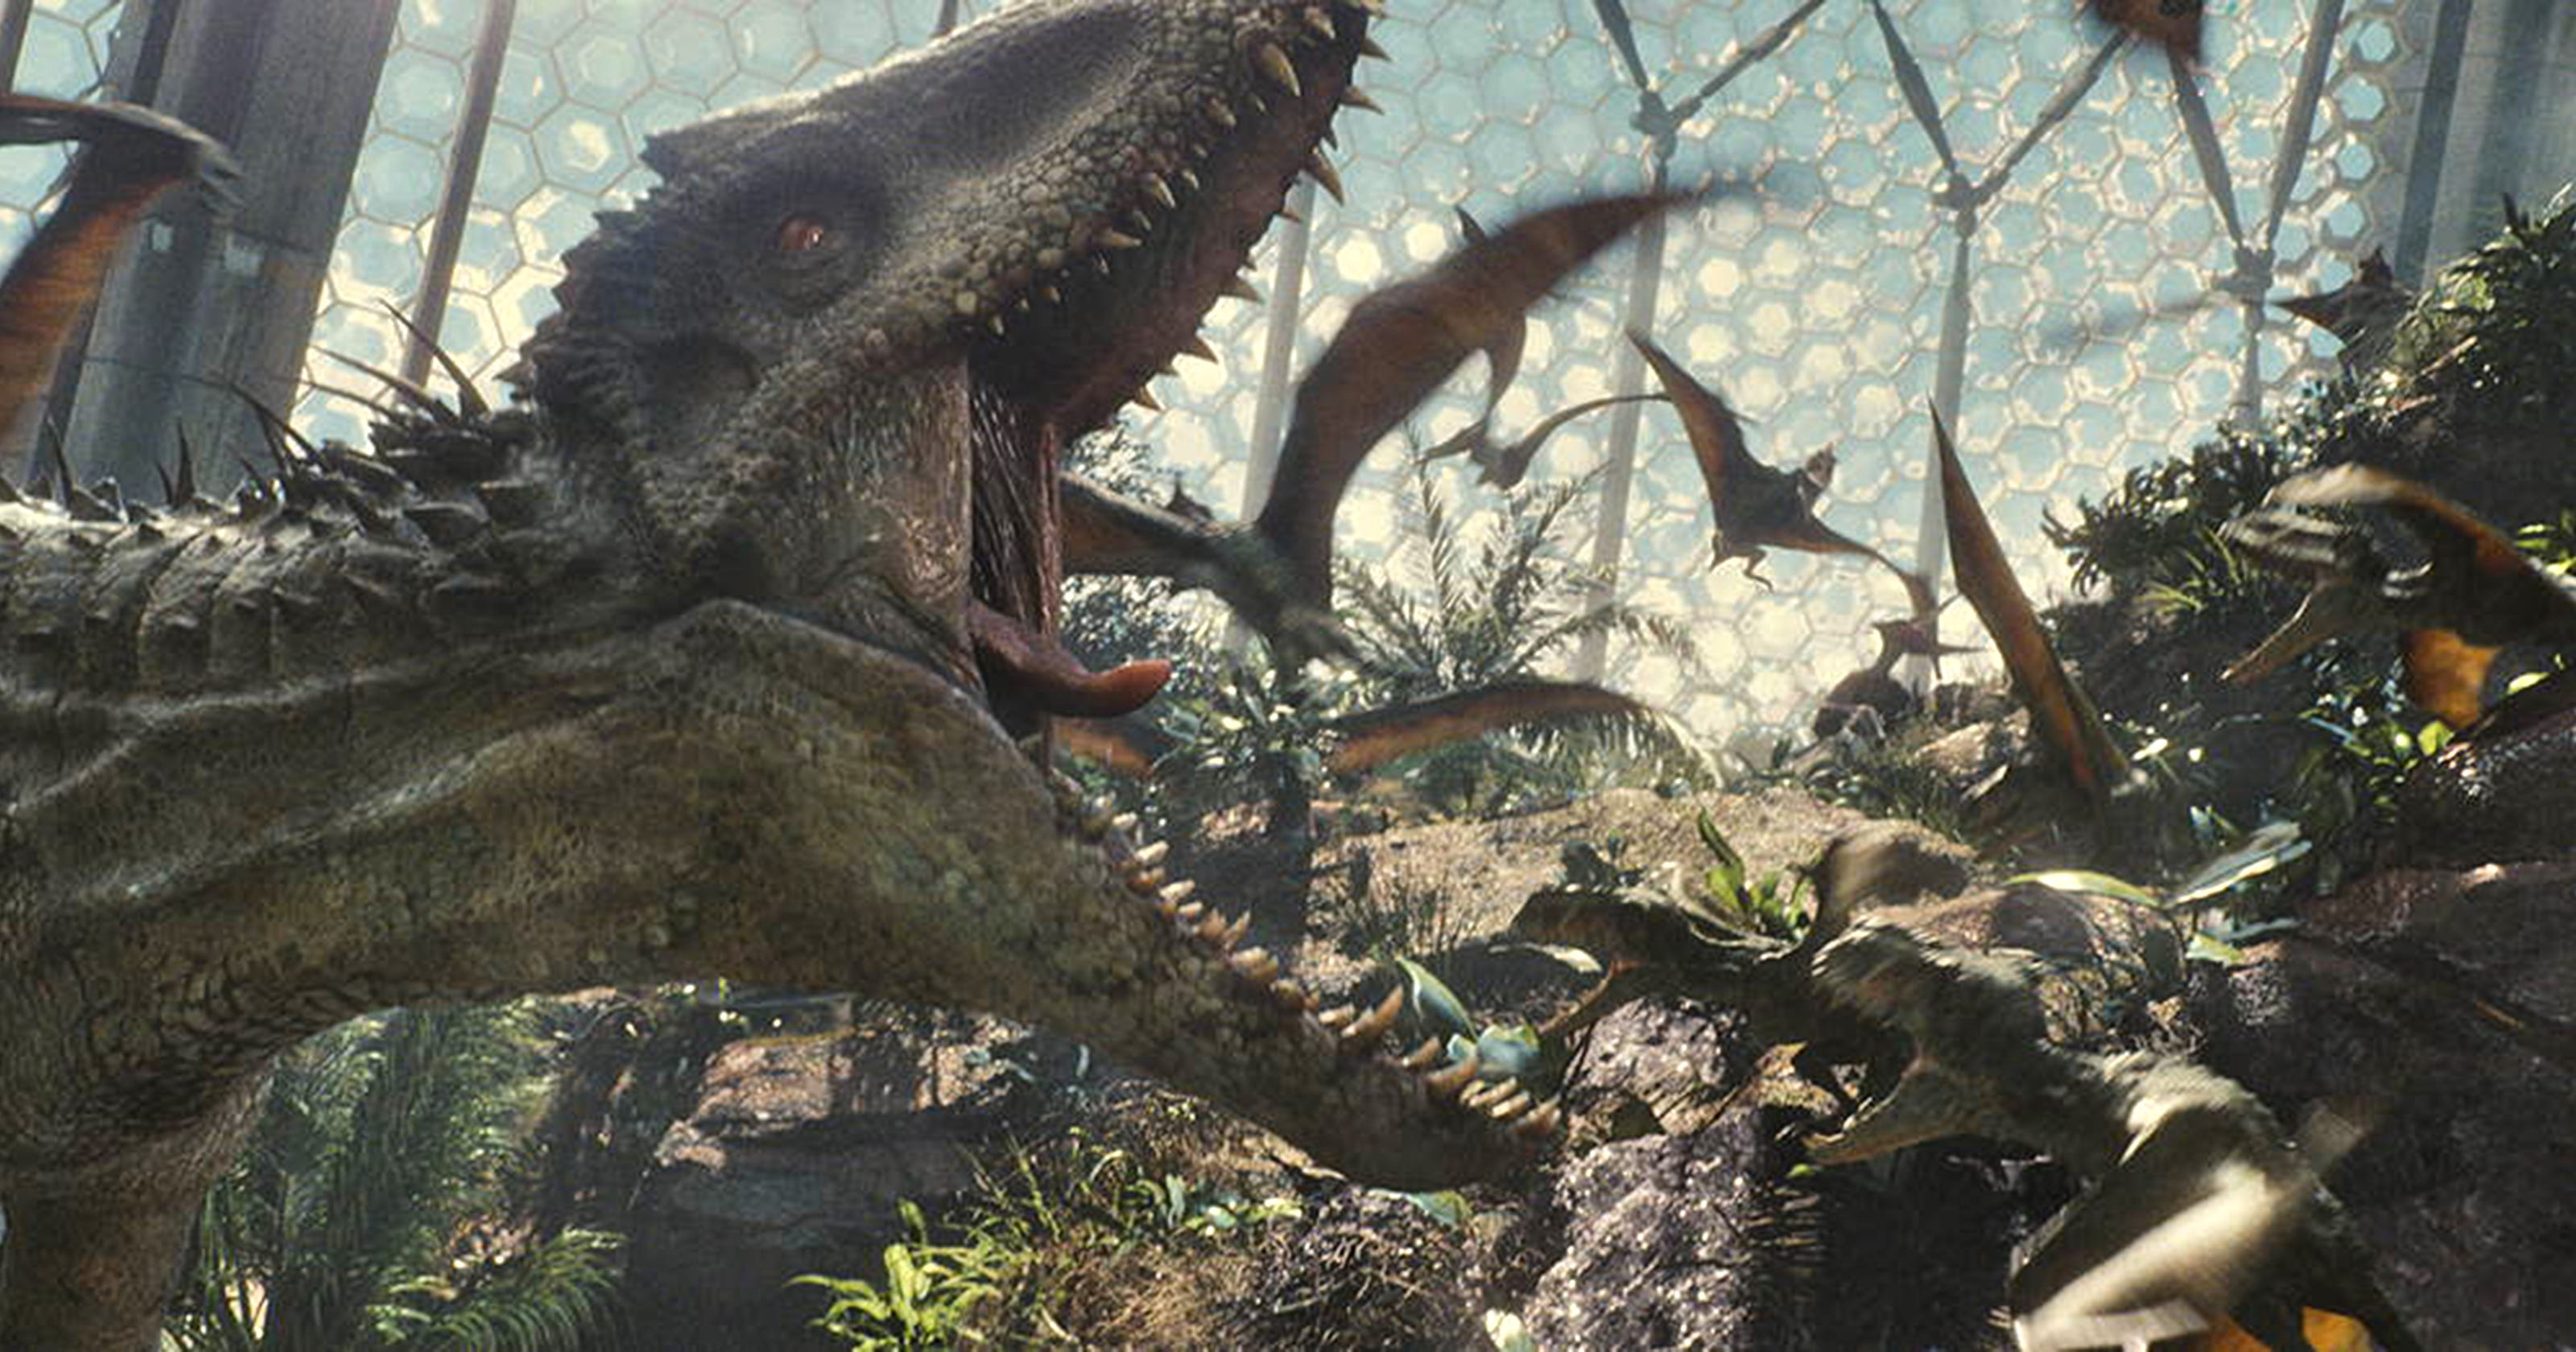 a visitor s guide to jurassic world dinosaurs